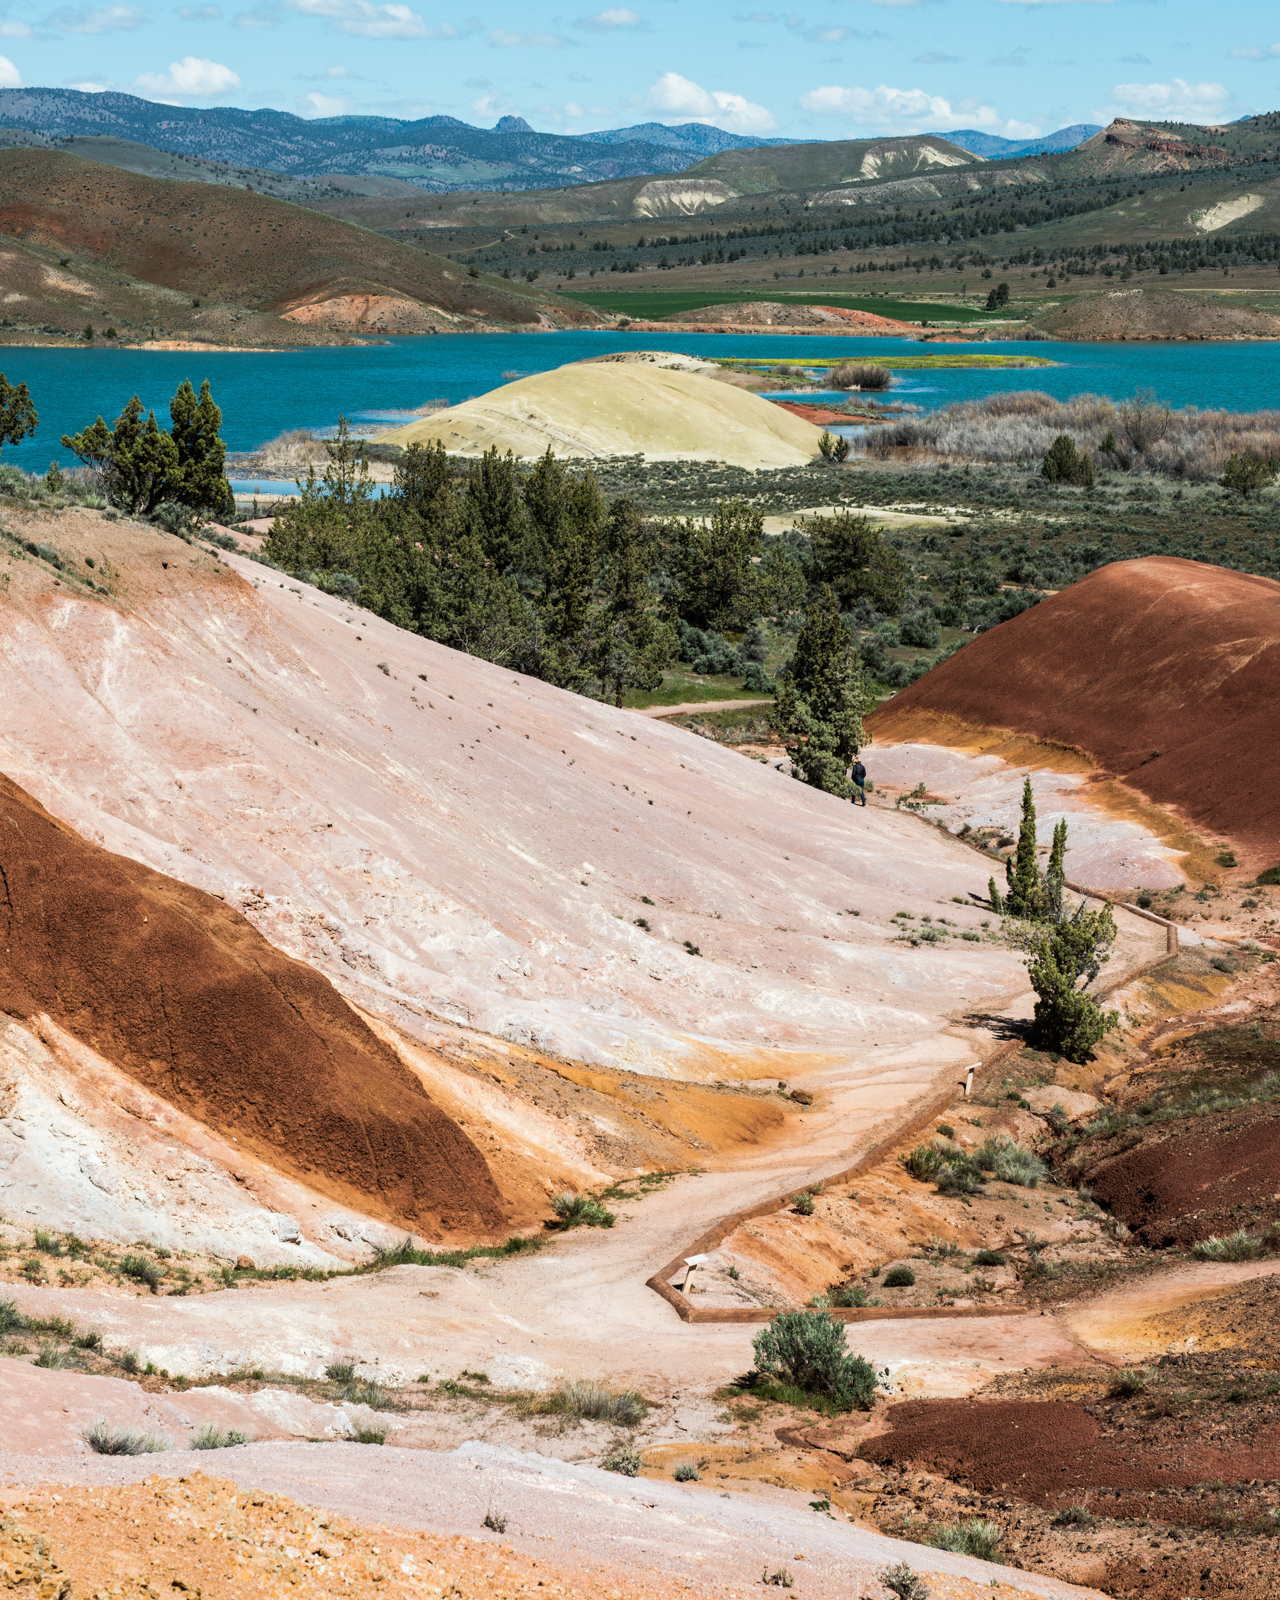 Just about a six hour drive southeast of Seattle, a trip to the Painted Hills is the fastest way to enter - or at at least feel it - a completely different galaxy. Be sure to hop on the 84 near the WA / OR border for the scenic route along the Columbia River Gorge if you embark from Seattle - you certainly won't regret it. And hey, it's not like there's a shortage of amazing coffee shops to hit for a little pick-me-up while you're in transit. Click on for photos of the swirly, water color-esque terrain of one of Oregon's Seven Wonders. (Image: Chona Kasinger / Seattle Refined)